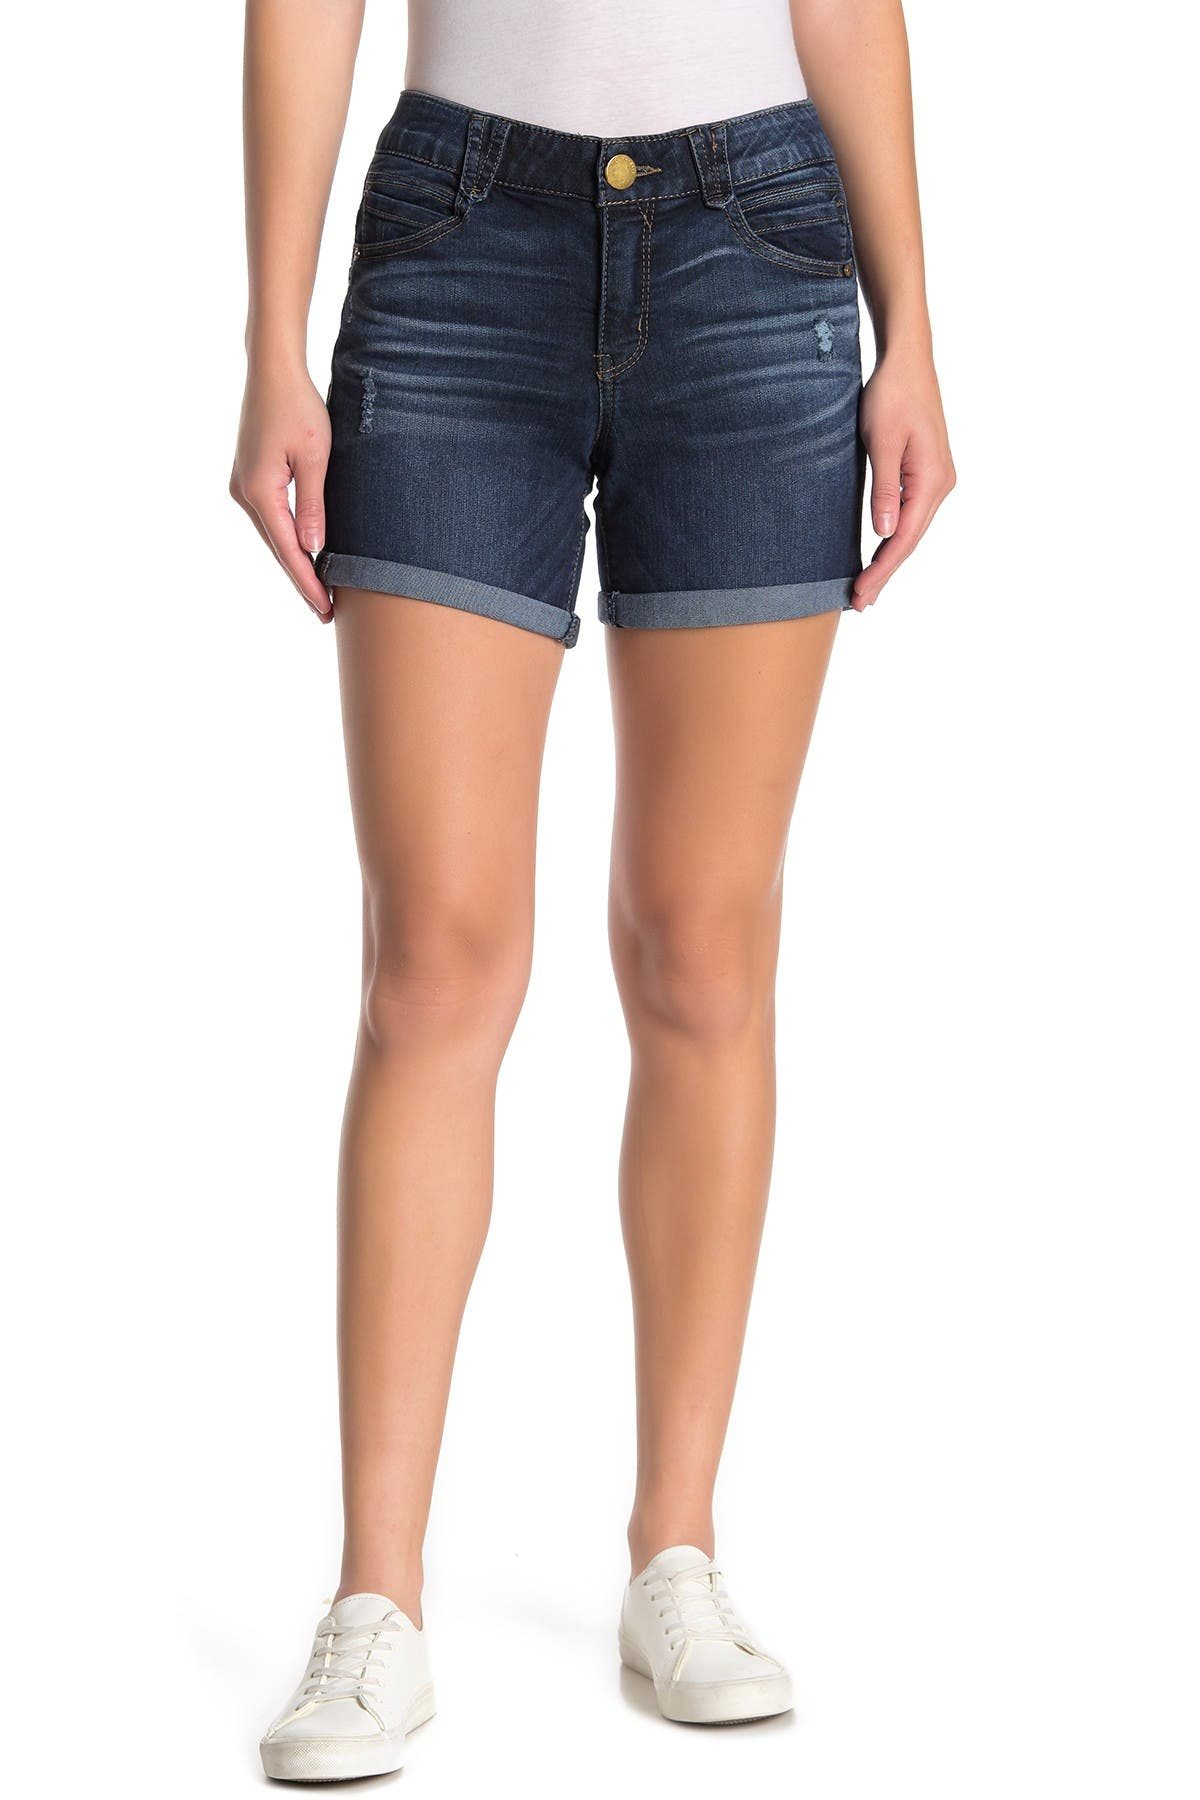 Image of Democracy Ab Solution Uncuffed Shorts